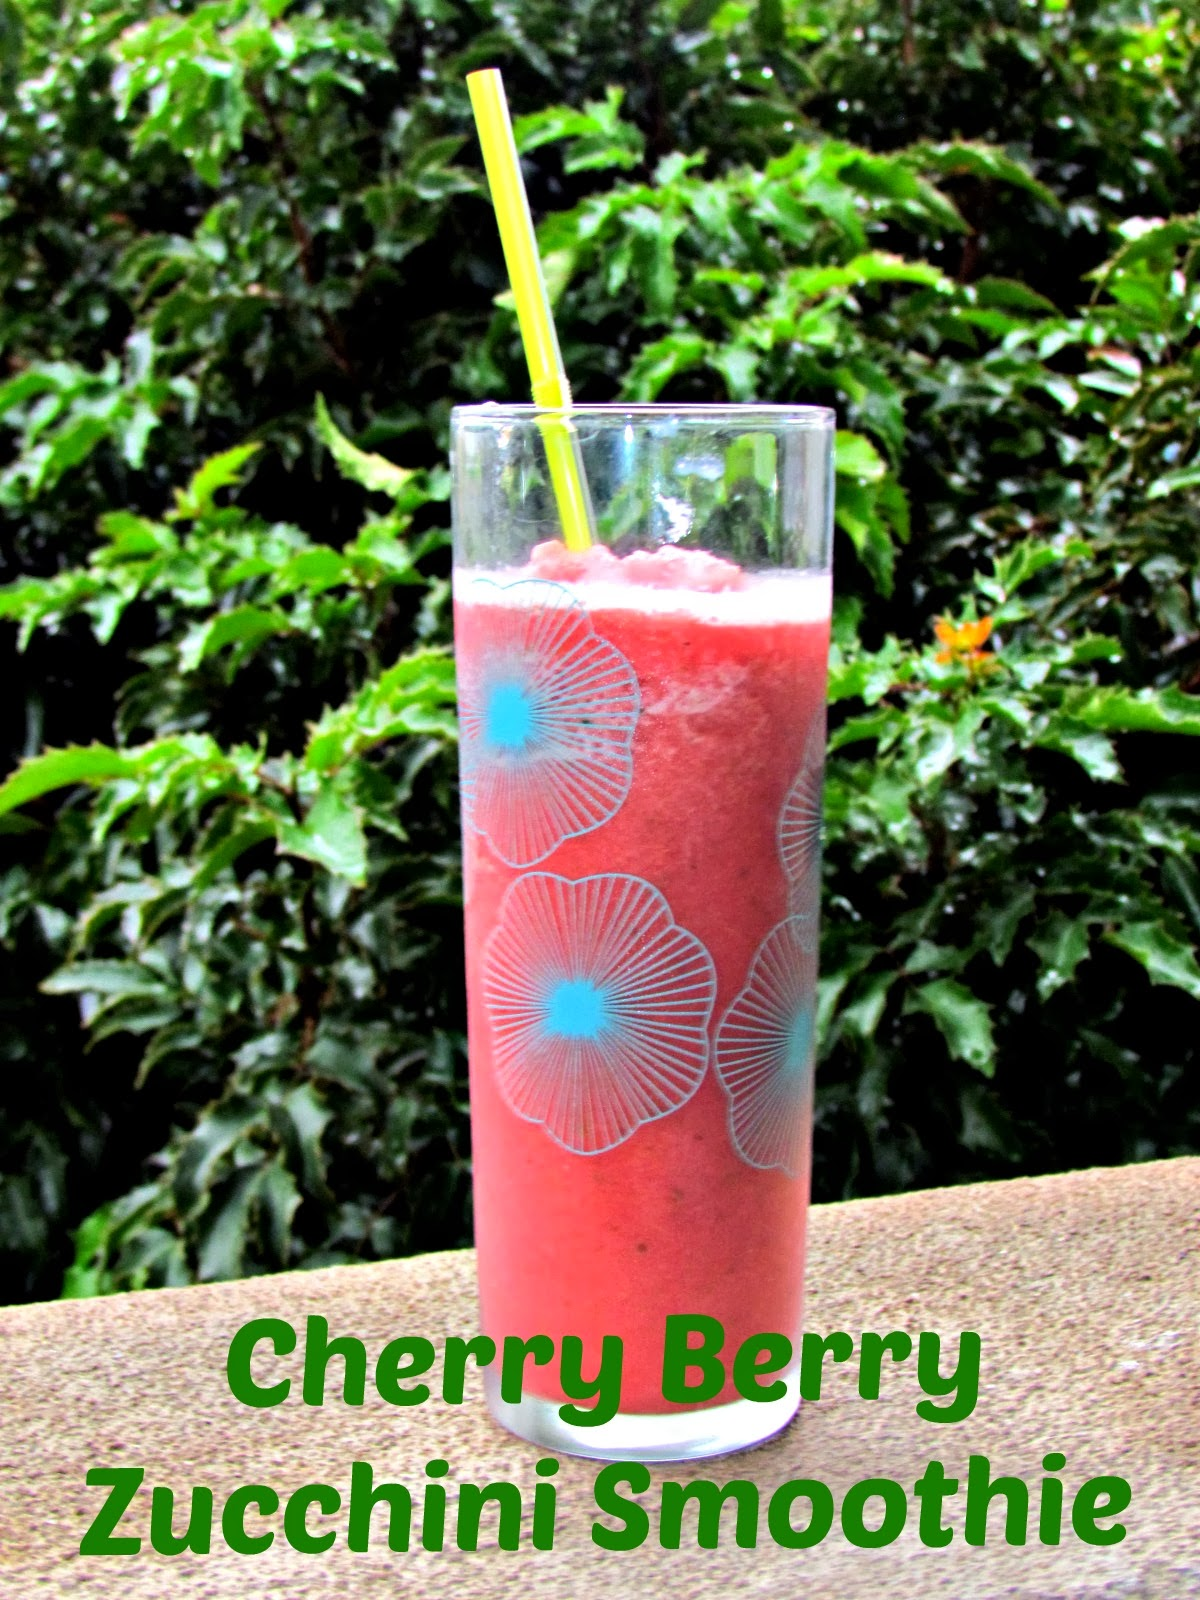 Cherry Berry Zucchini Smoothie #V8Refreshers | Home Maid ...